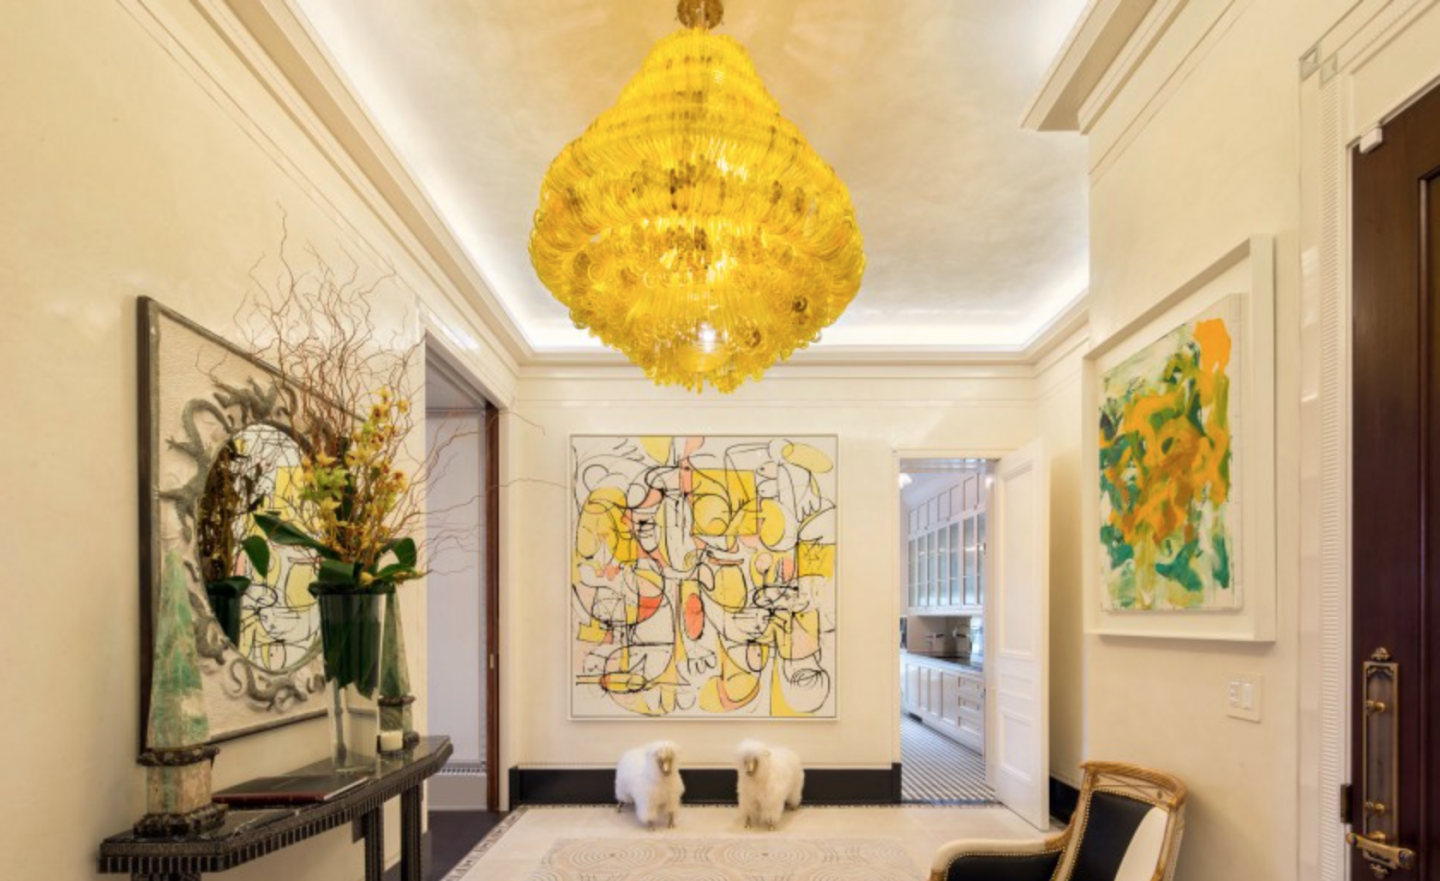 Frank Lloyd Wright's apartment 409 at The Plaza, listed for $39.5 million